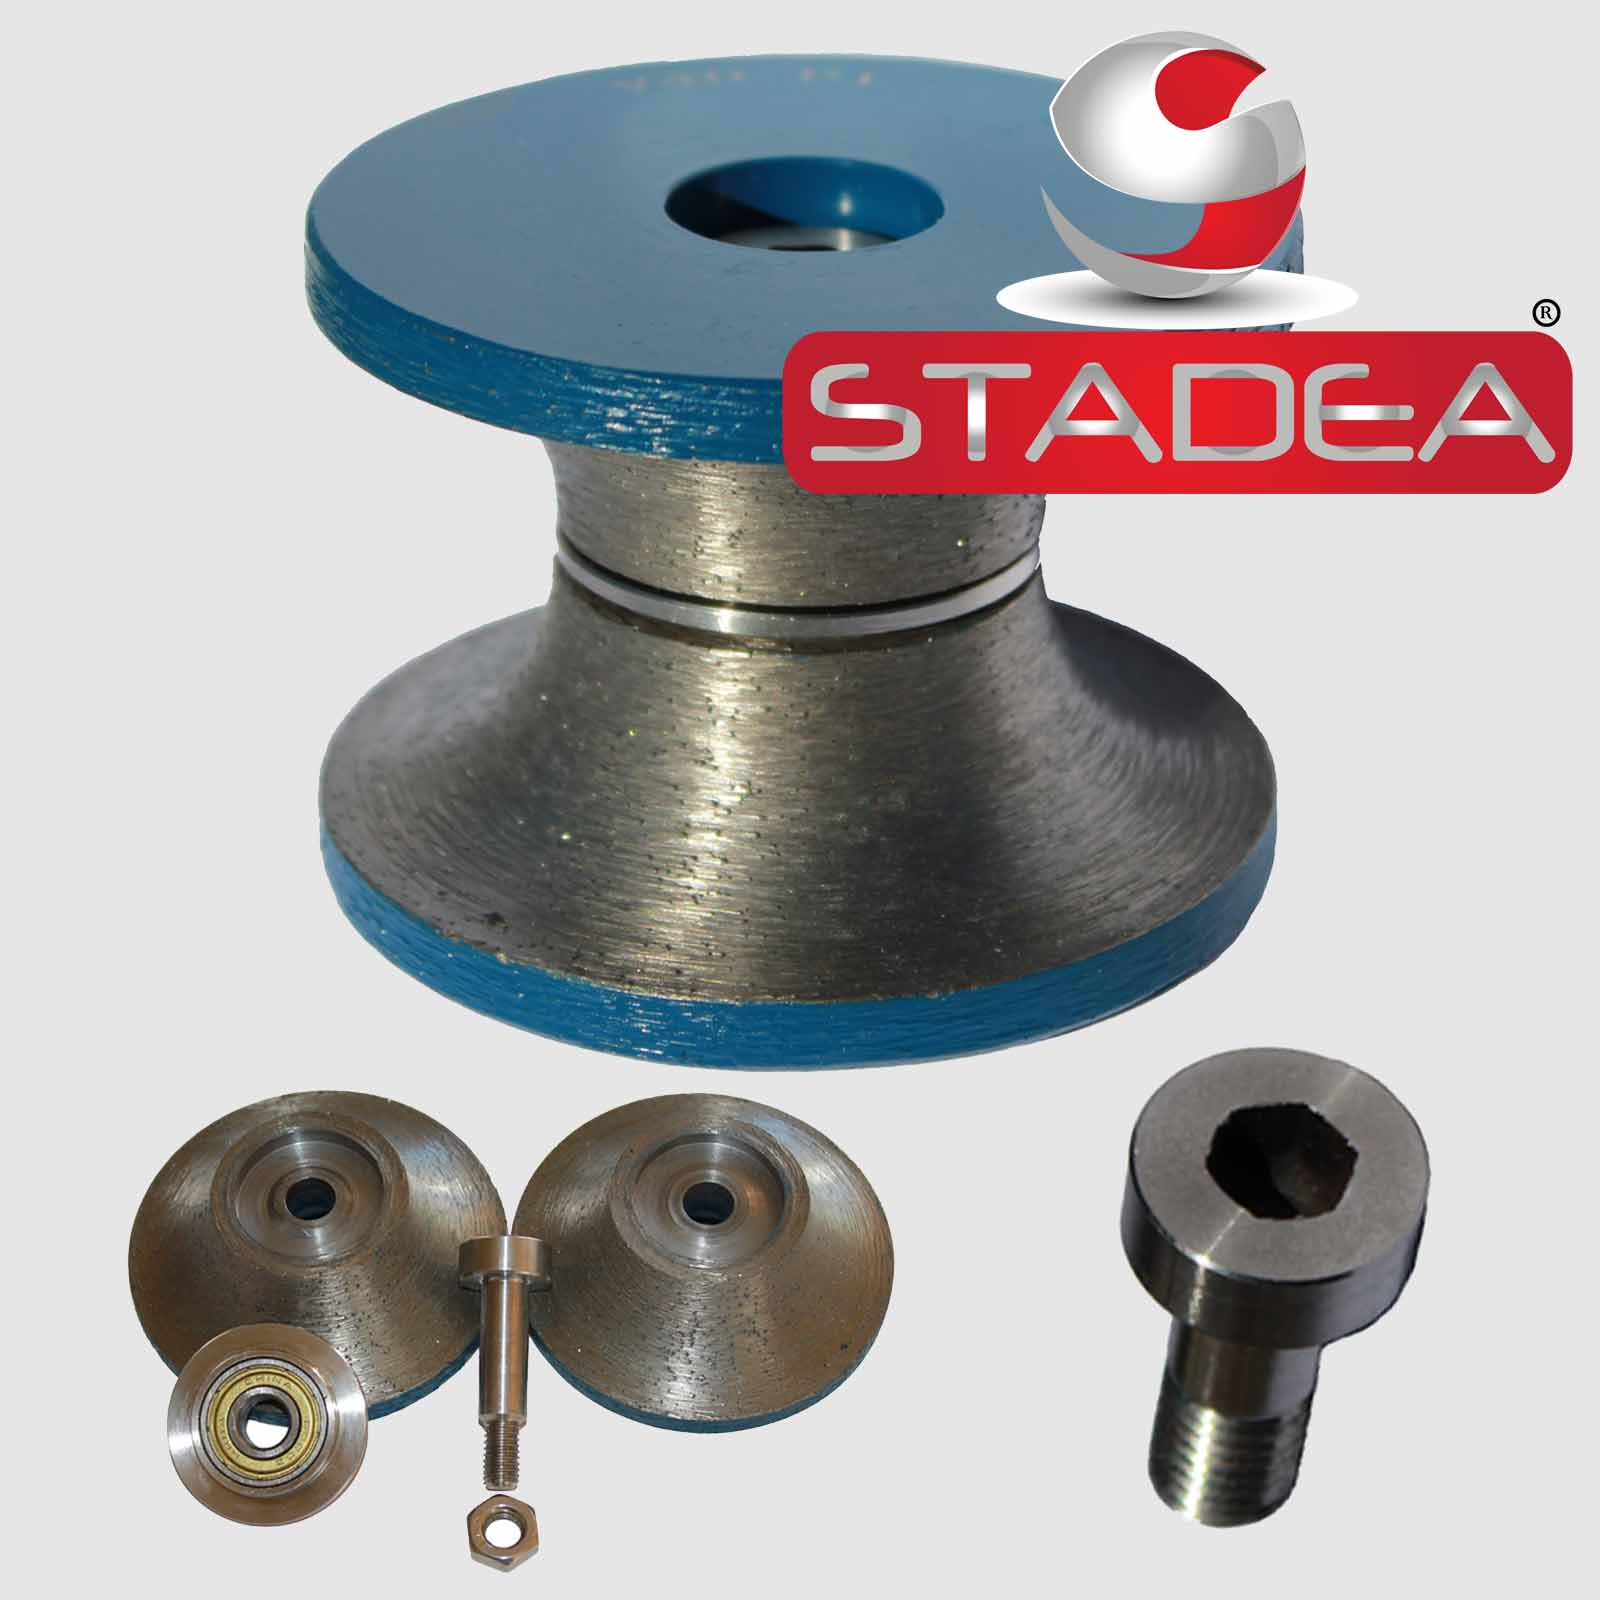 Trusted Stone Fabrication Tool Supplier Shop N Save Diamond Tools